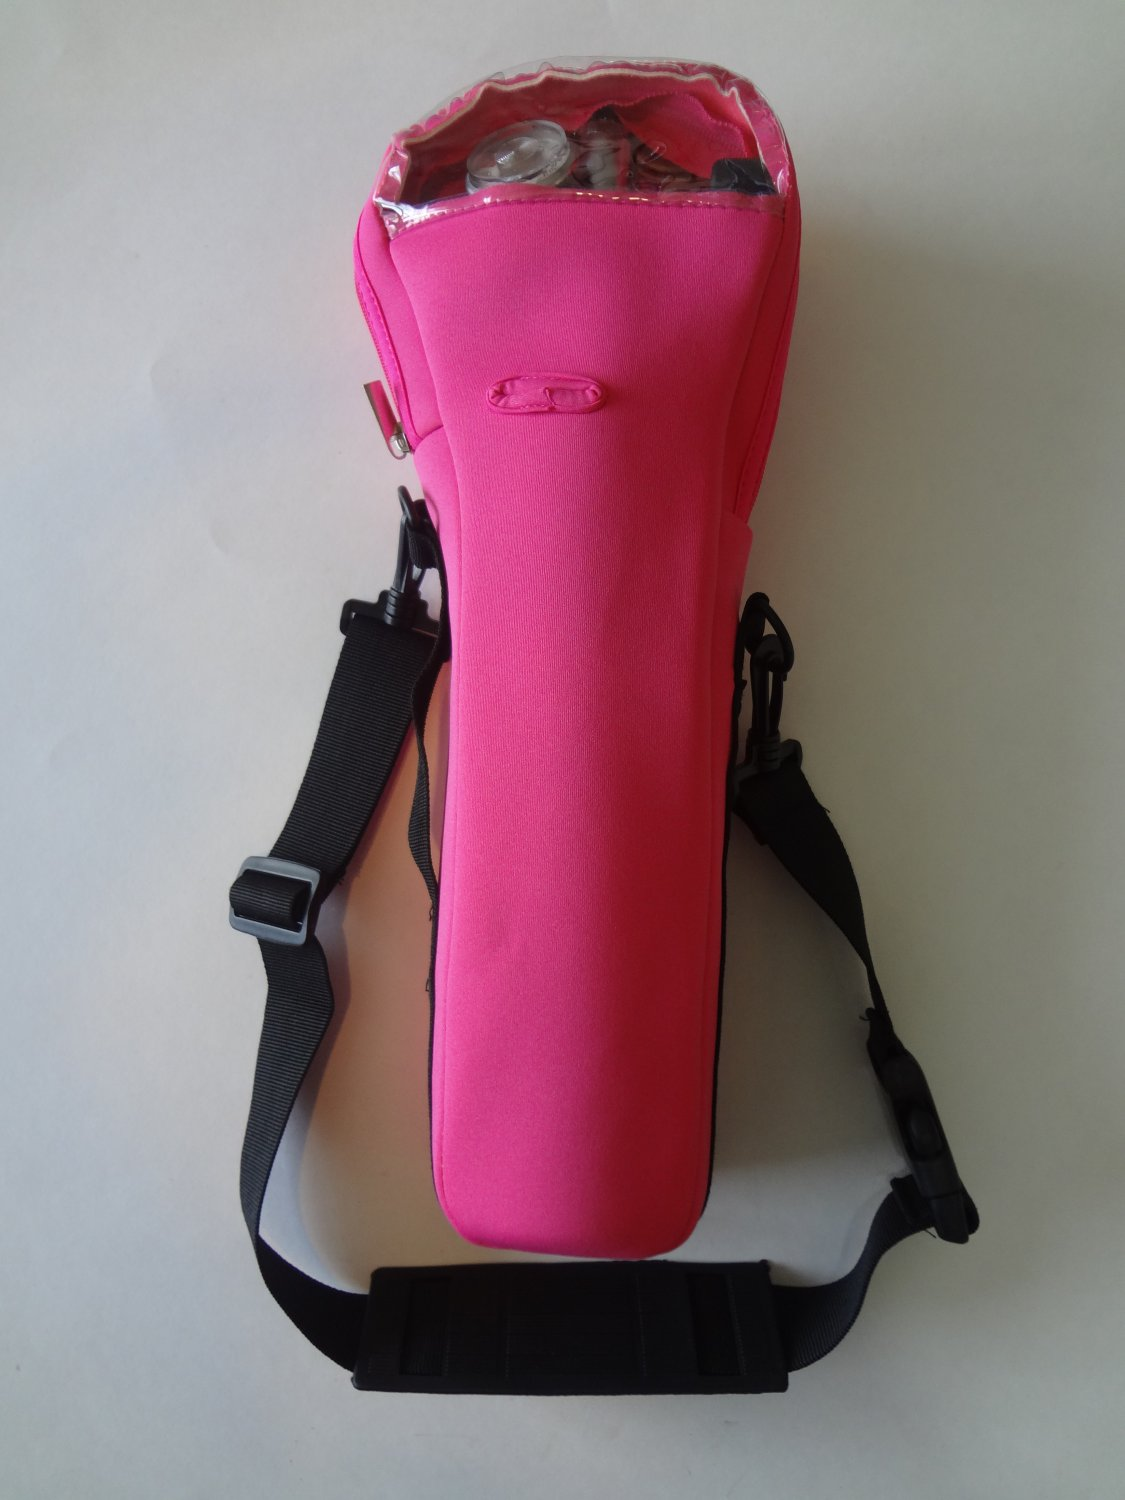 Pink oxygen cylinder carrier for B or M-6 cylinders